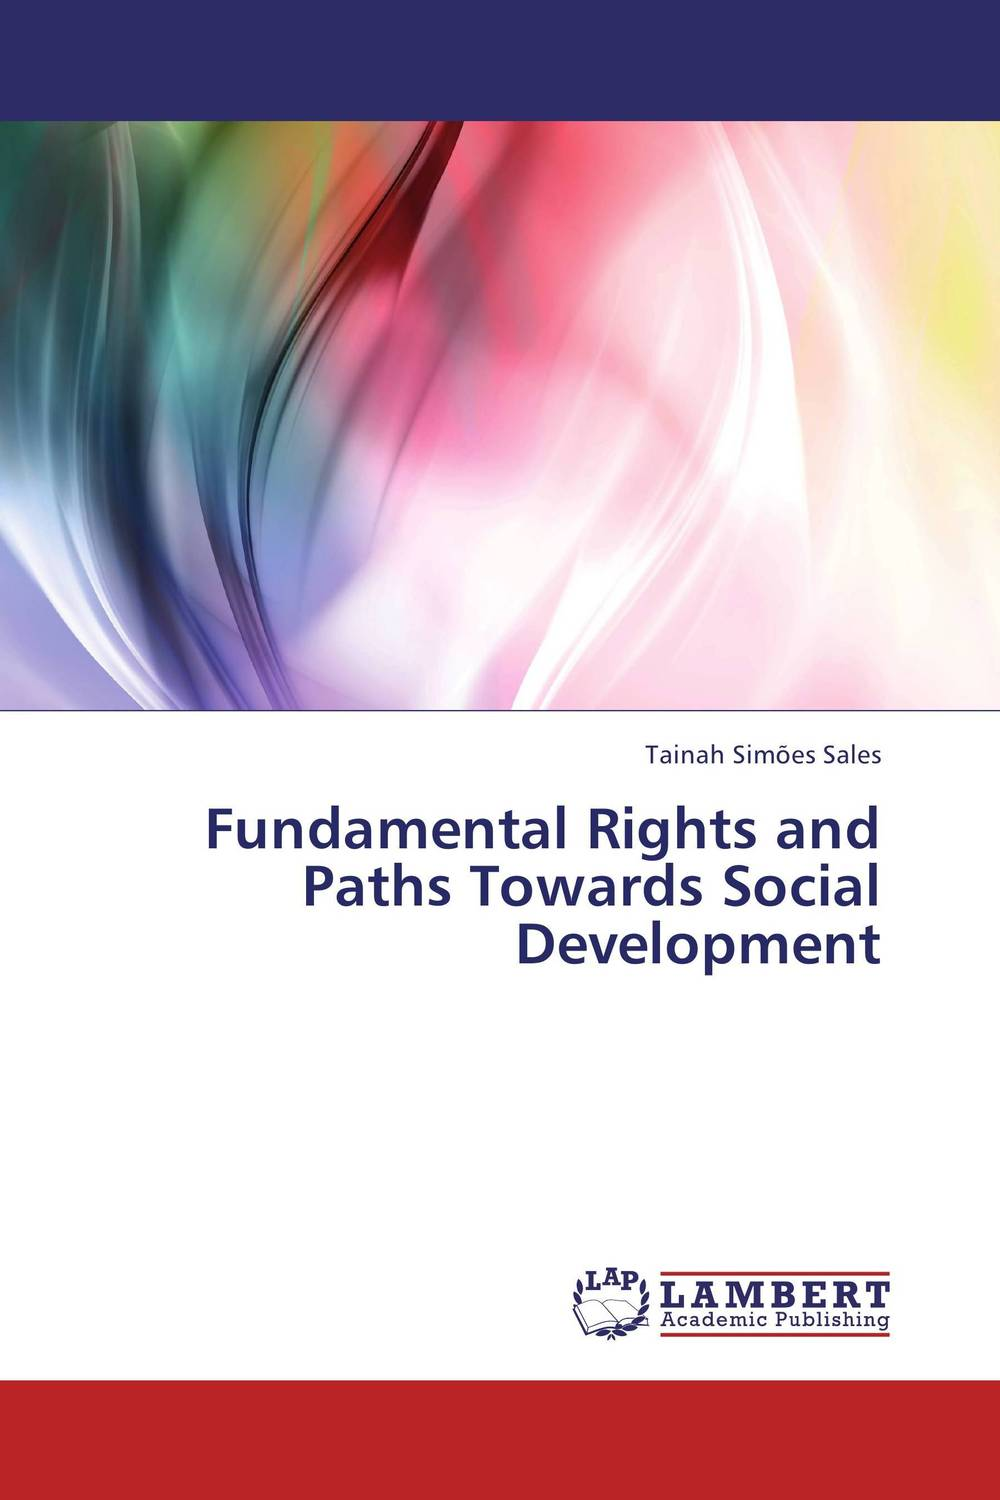 Fundamental Rights and Paths Towards Social Development manuscript found in accra